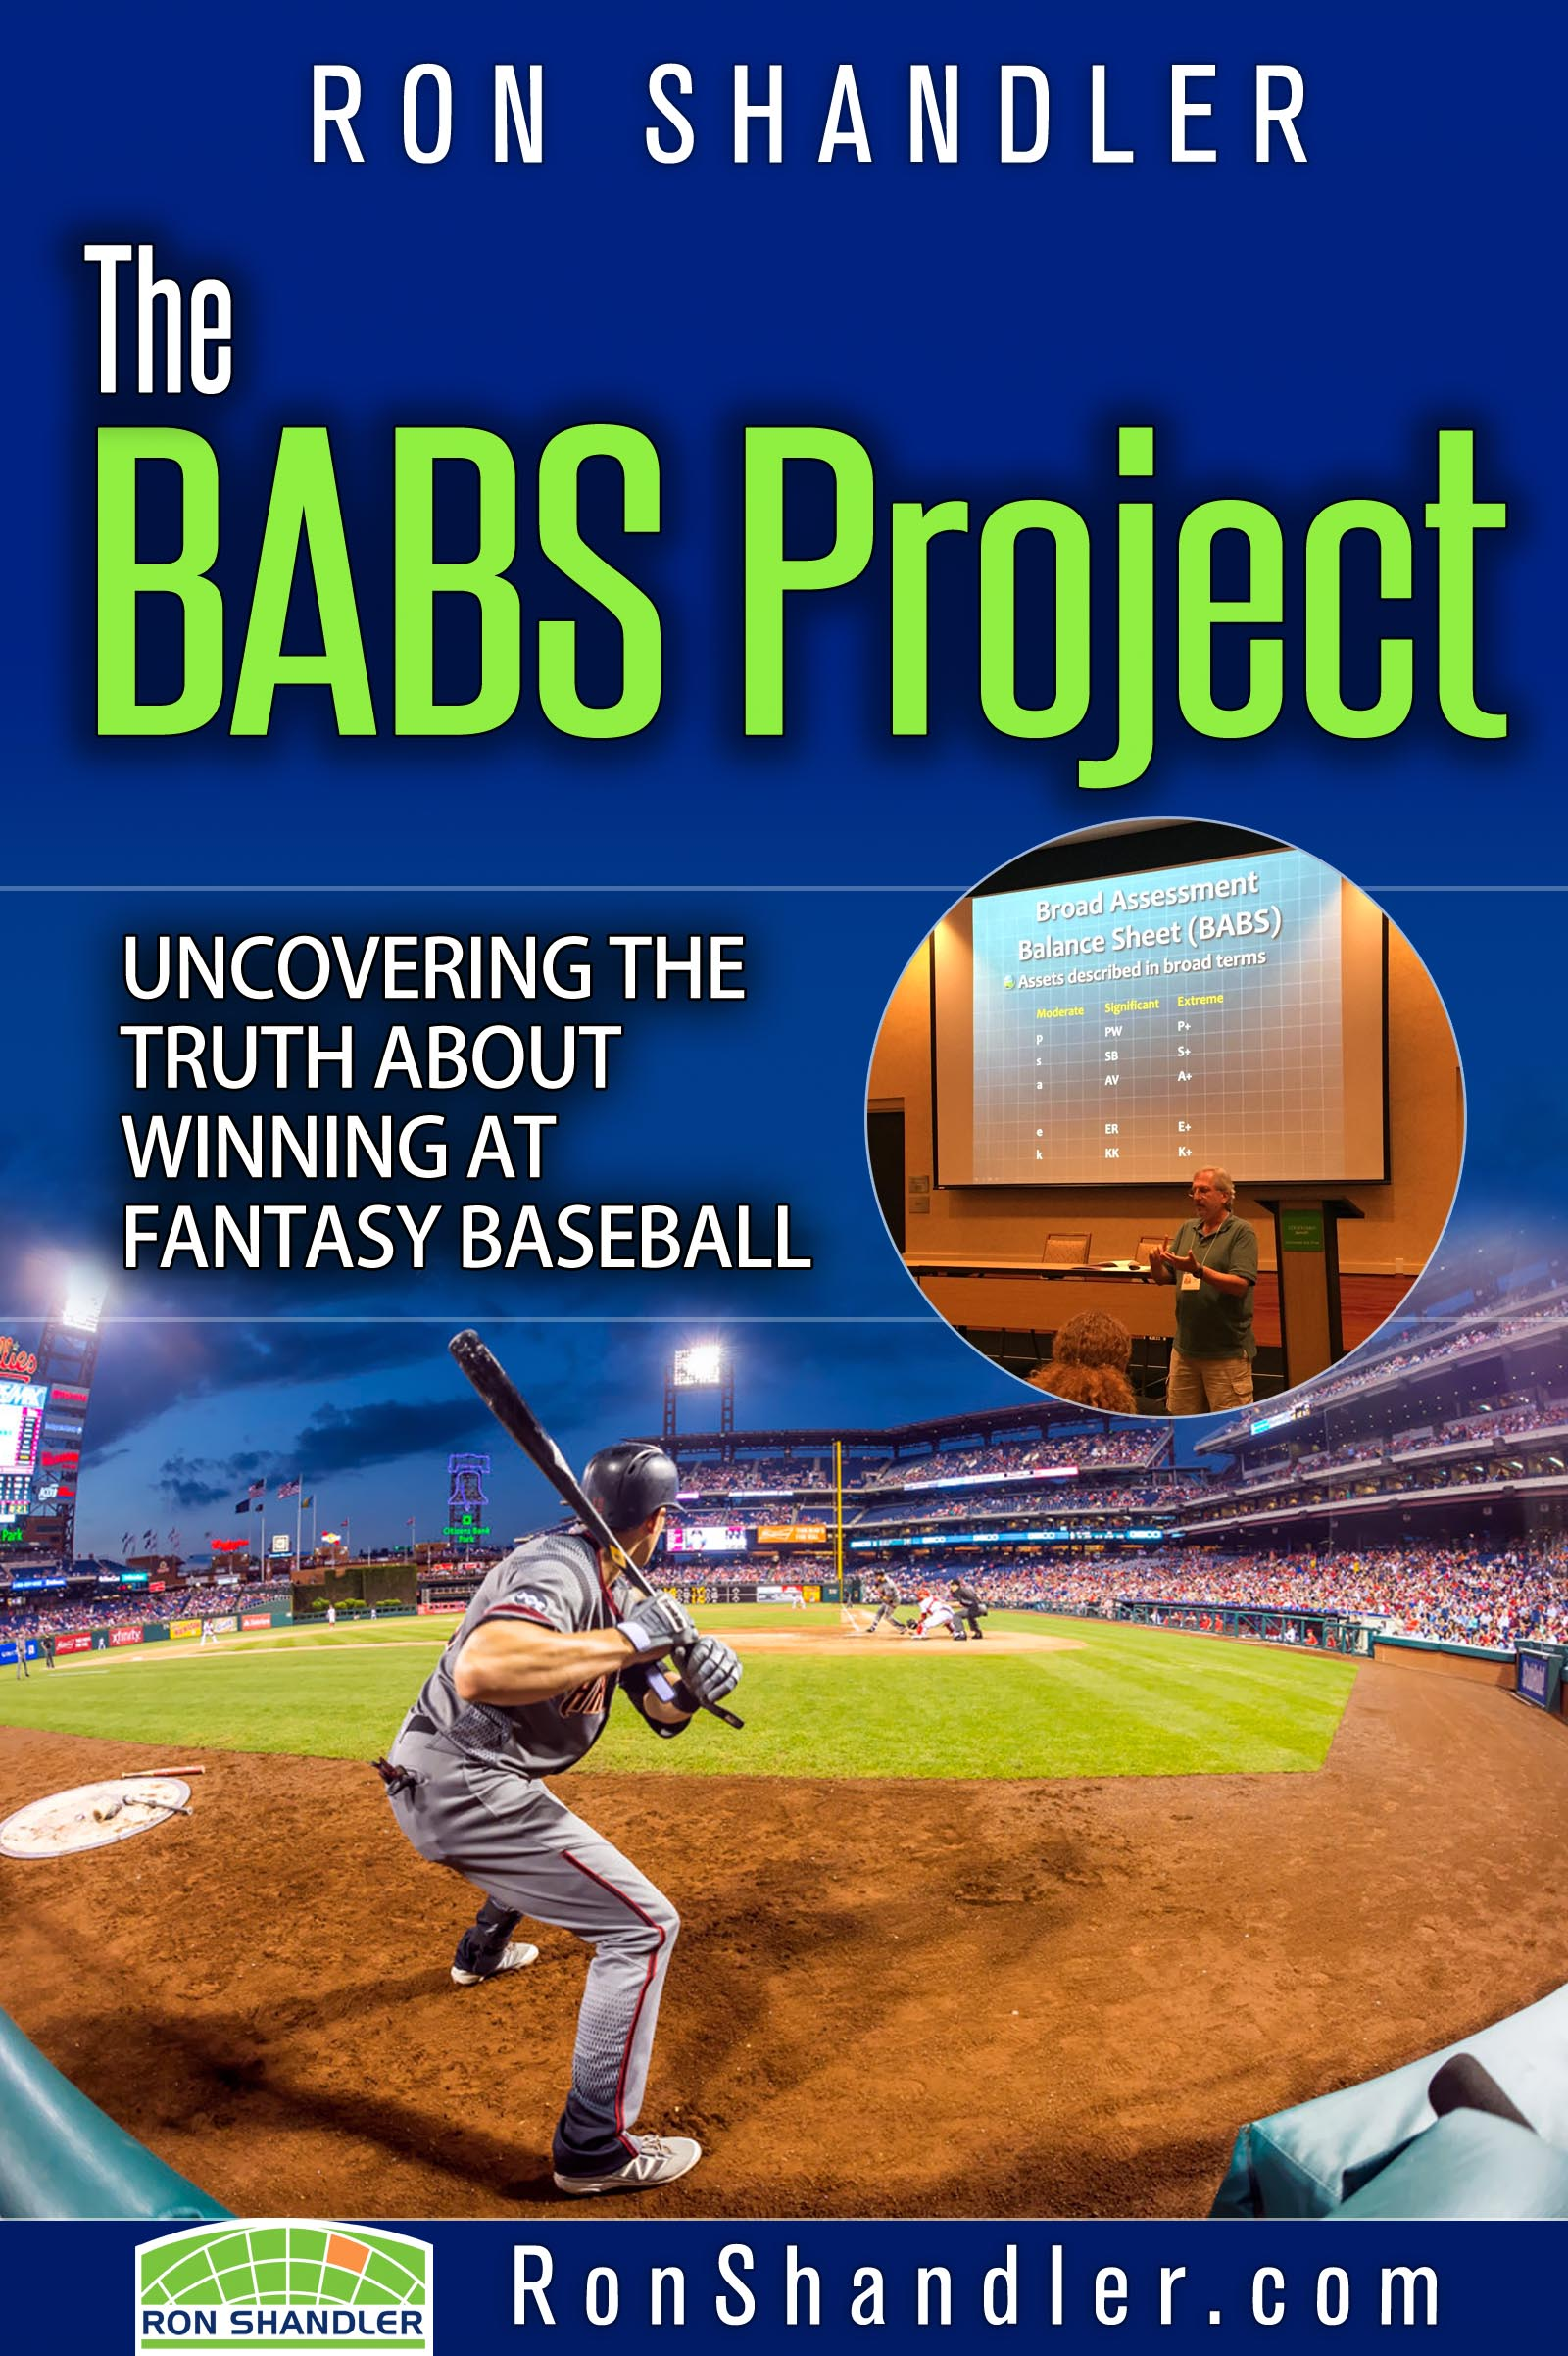 Complete Details About The Broad Assessment Balance Sheet (babs) Can Be  Found In The Pdf Ebook, €�the Babs Project: Uncovering The Truth About  Winning At